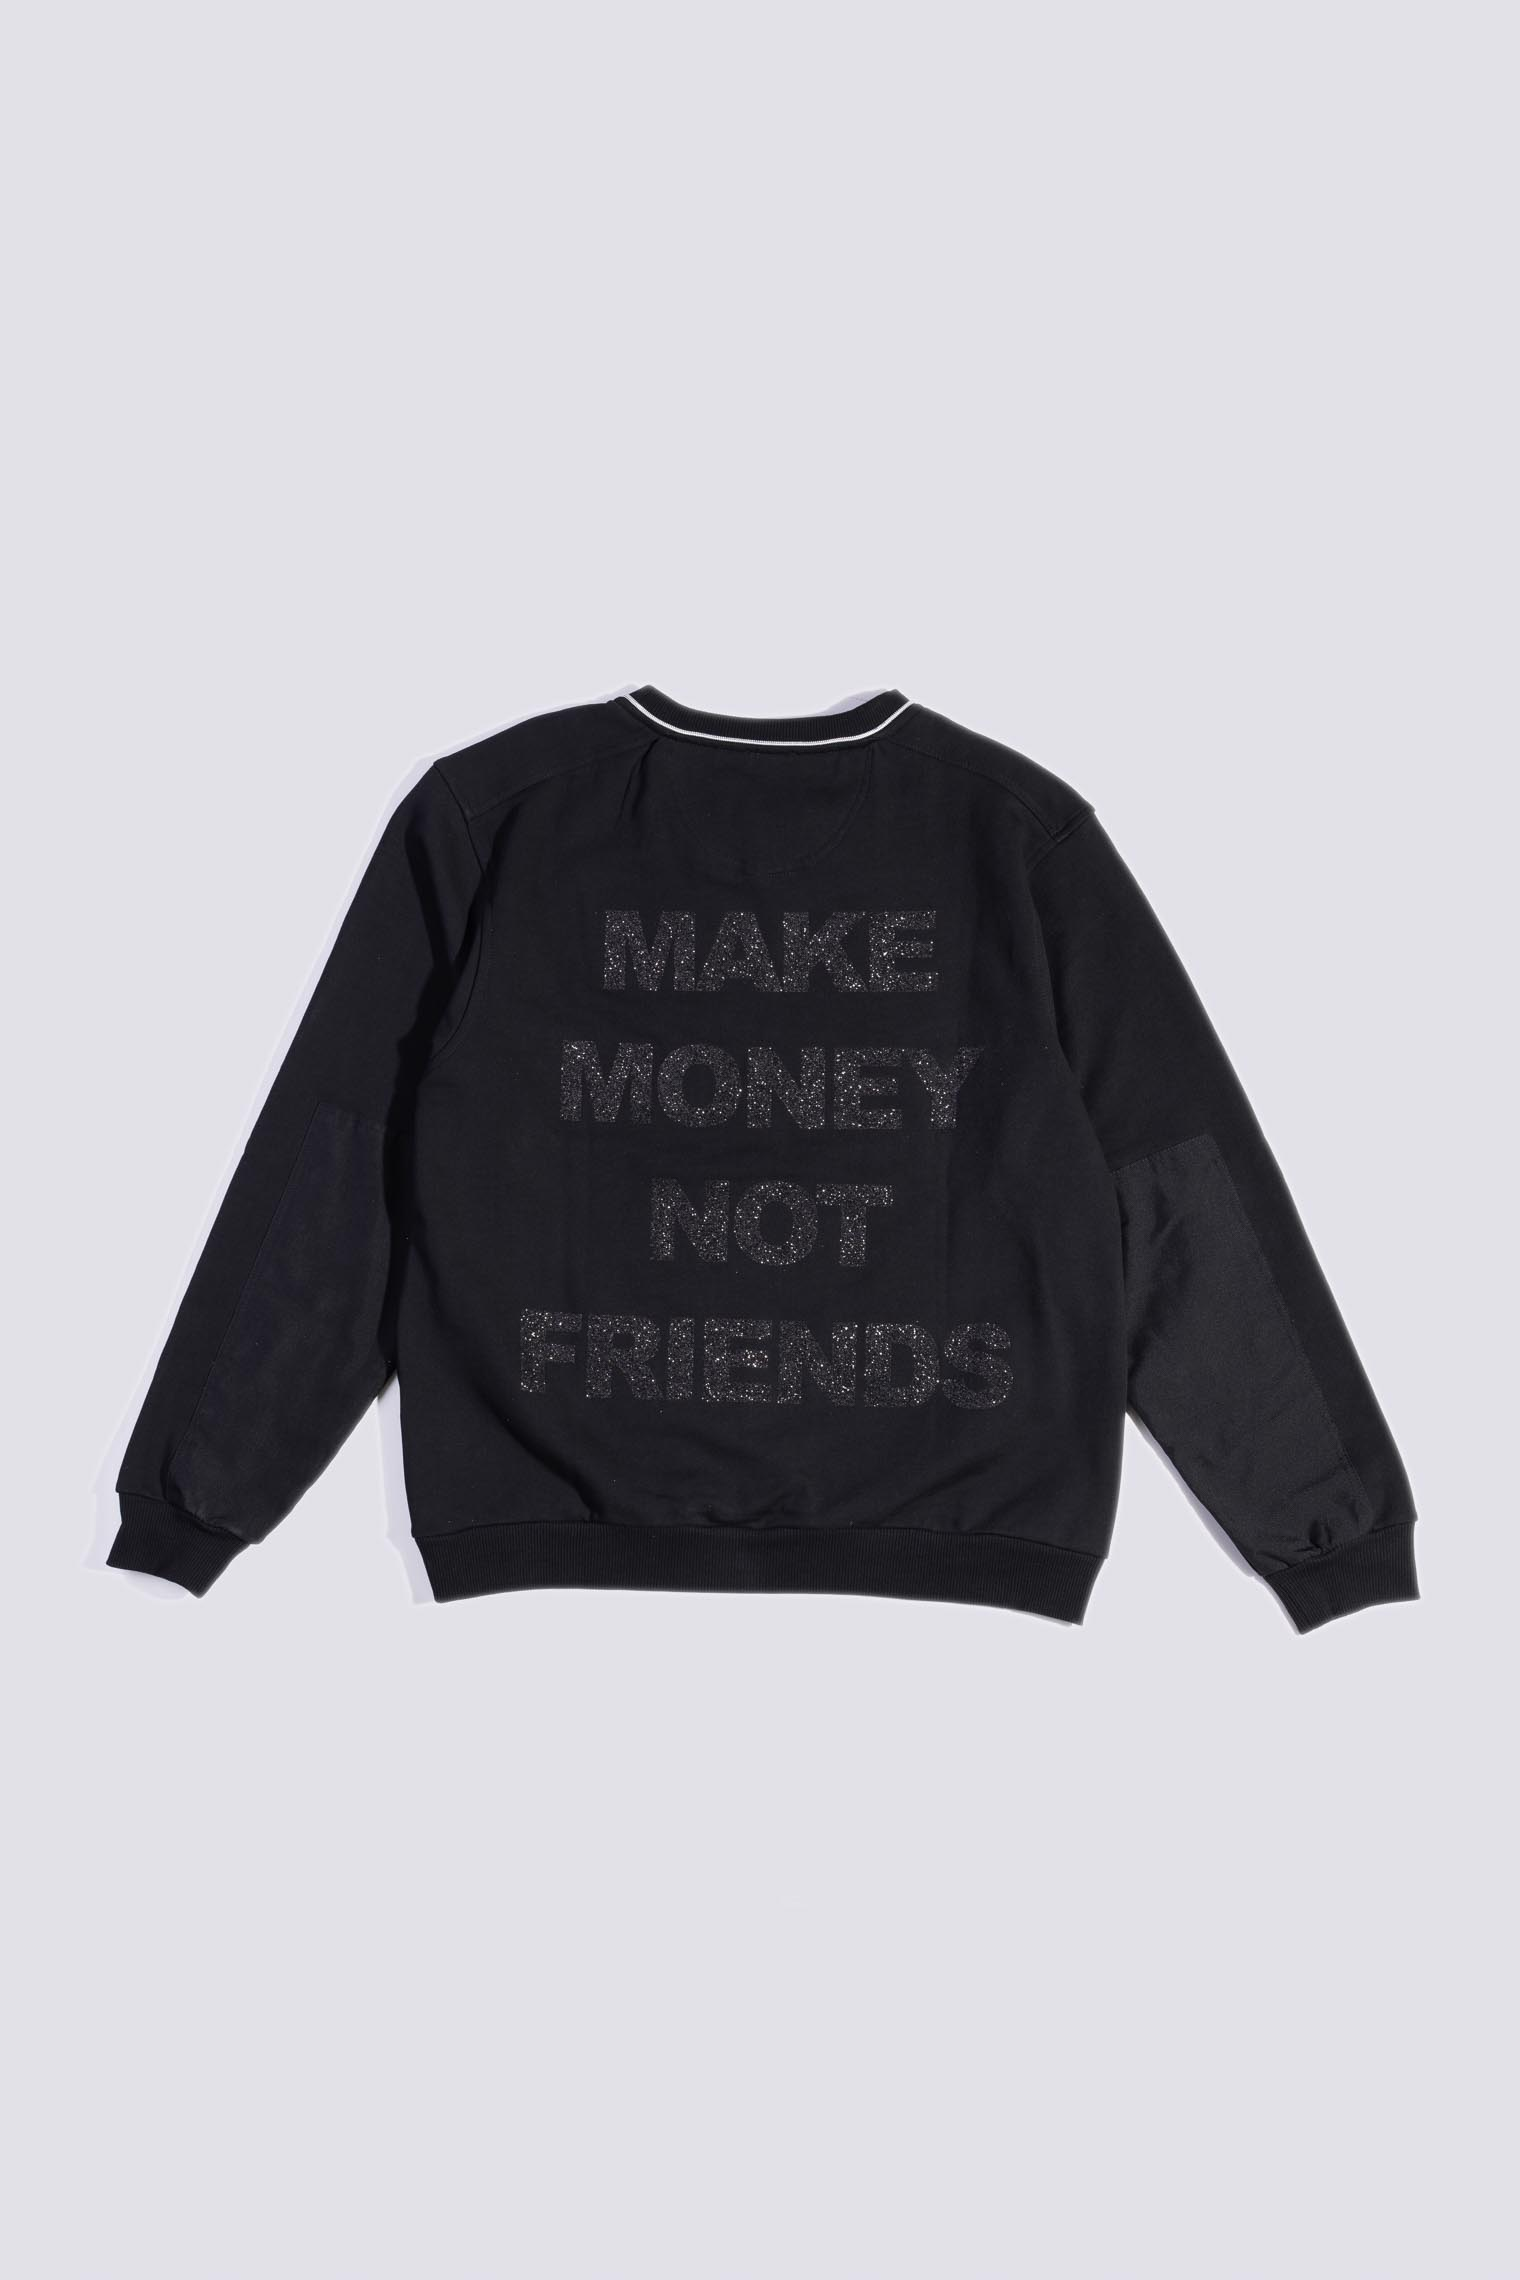 MAKE MONEY NOT FRIENDS FELPA ZIP NERO/NERO AE1